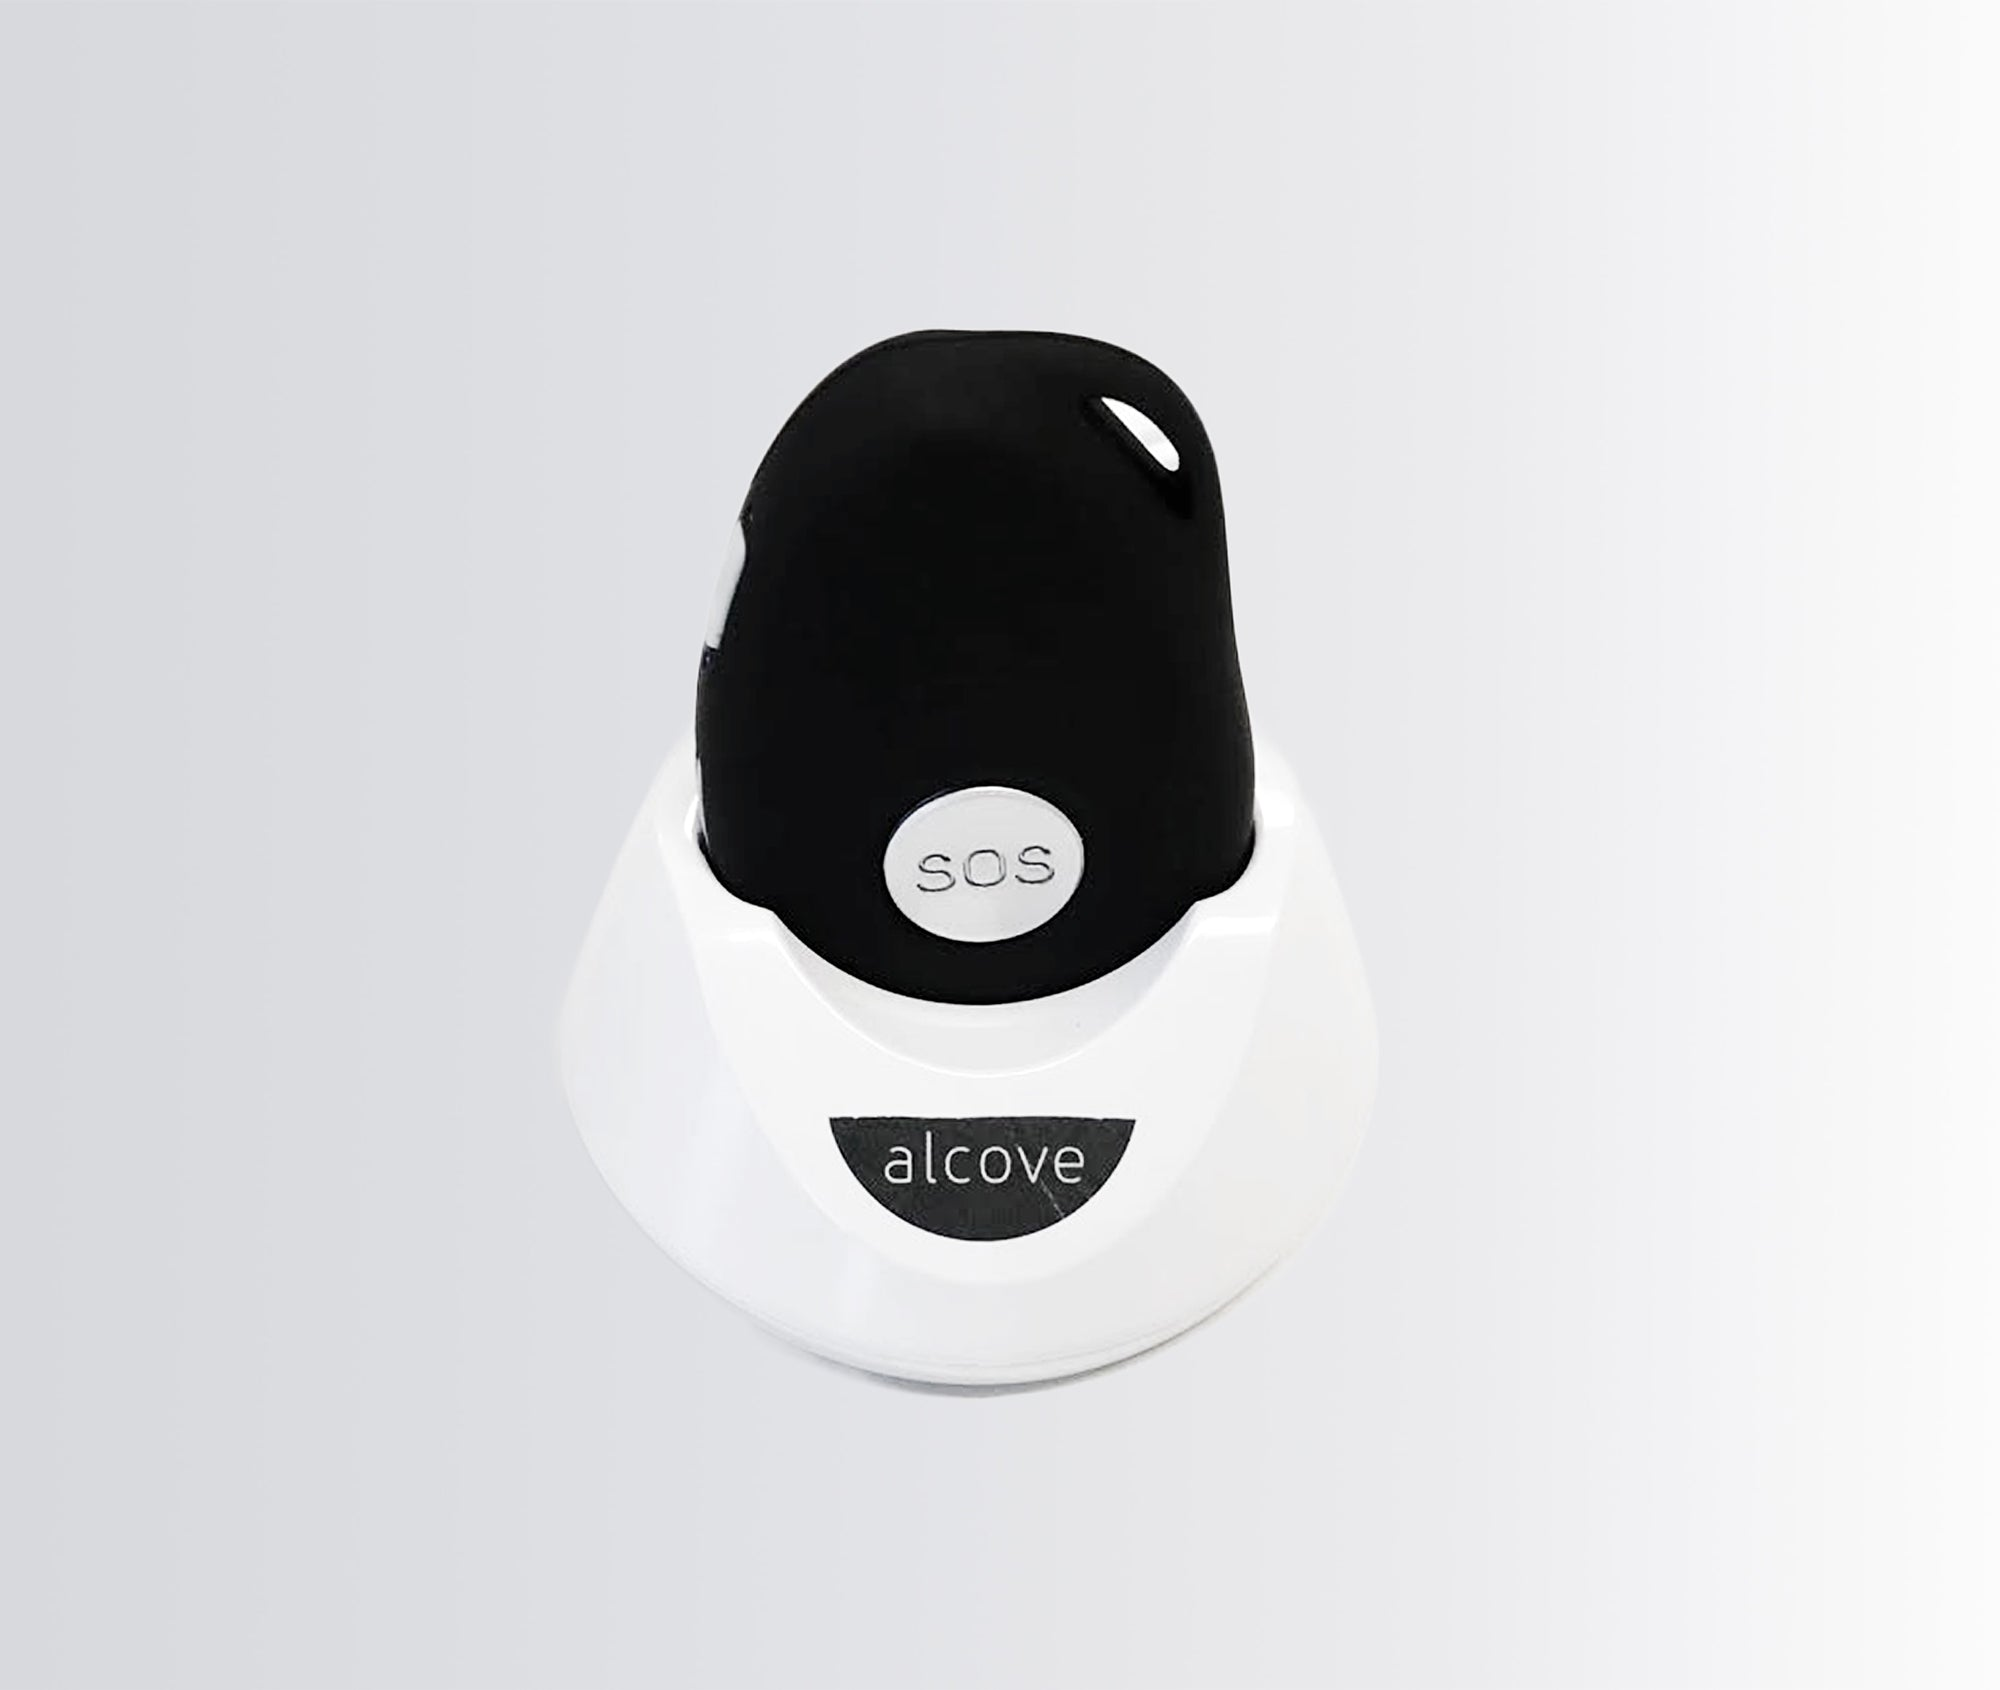 Alcove 'Find Me' - GPS Tracker & Personal Alarm